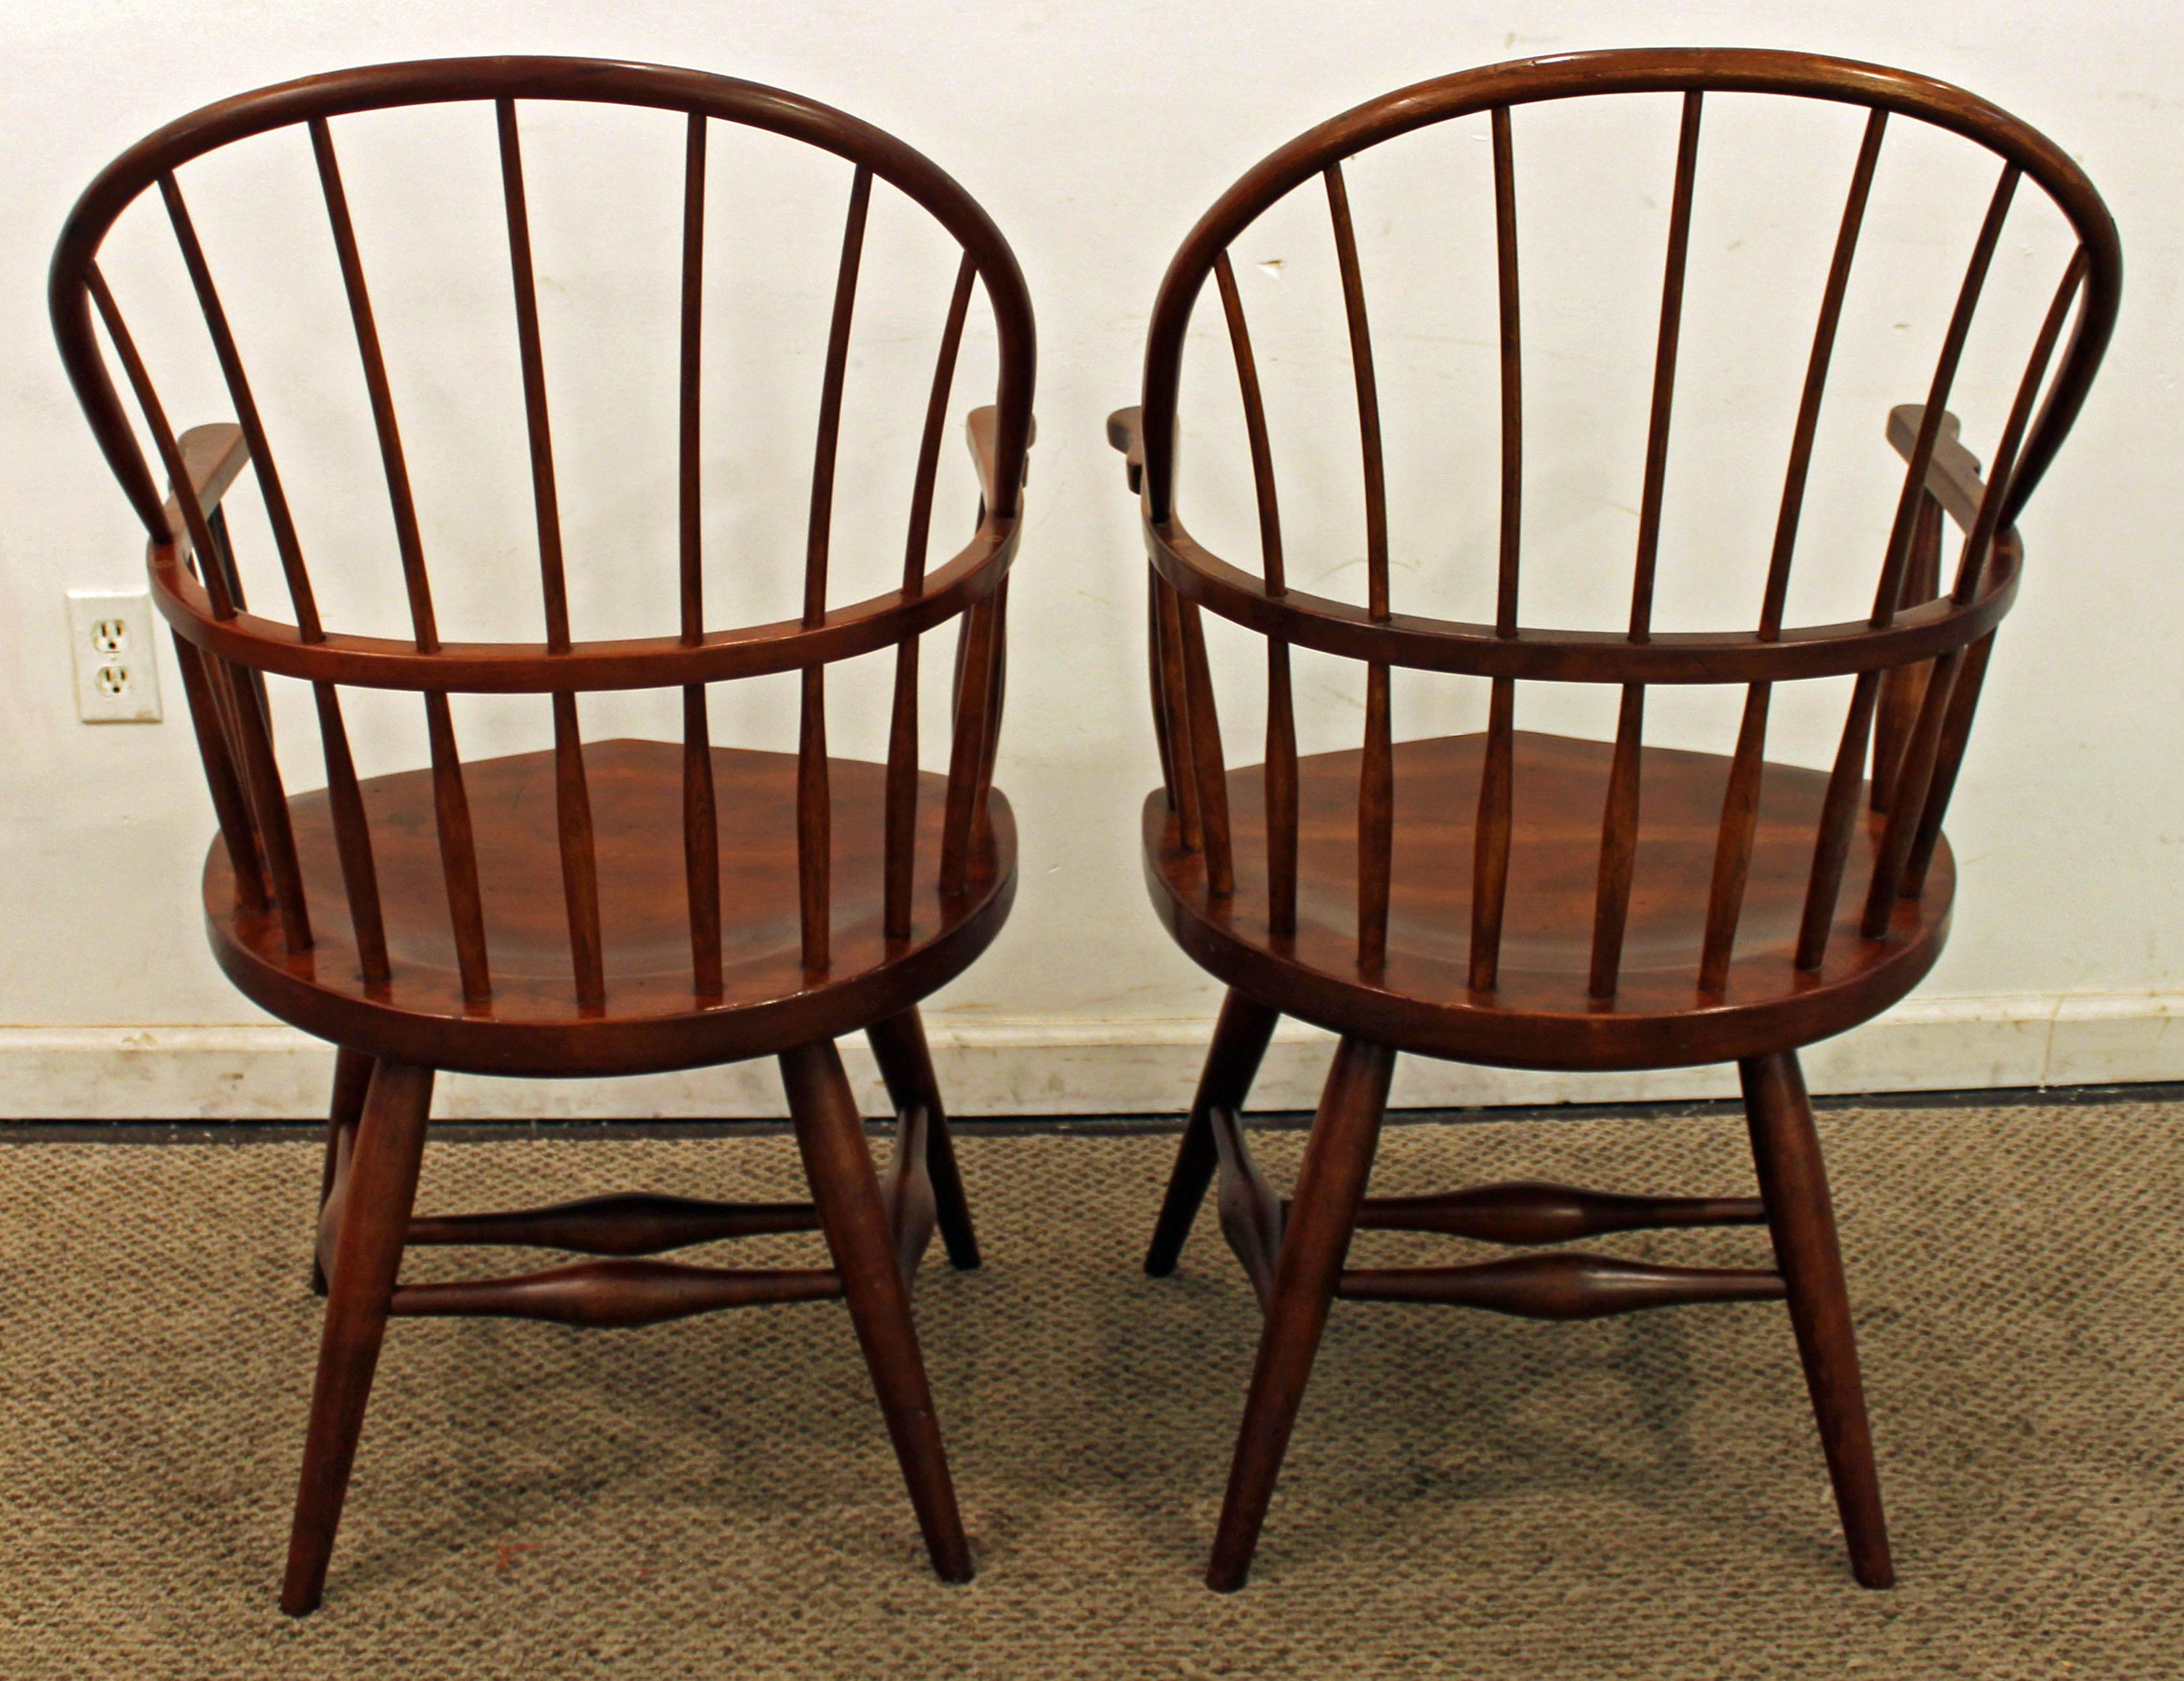 Duckloe Bros Cherry Hoop Back Windsor Arm Dining Chairs   A Pair   Image 4